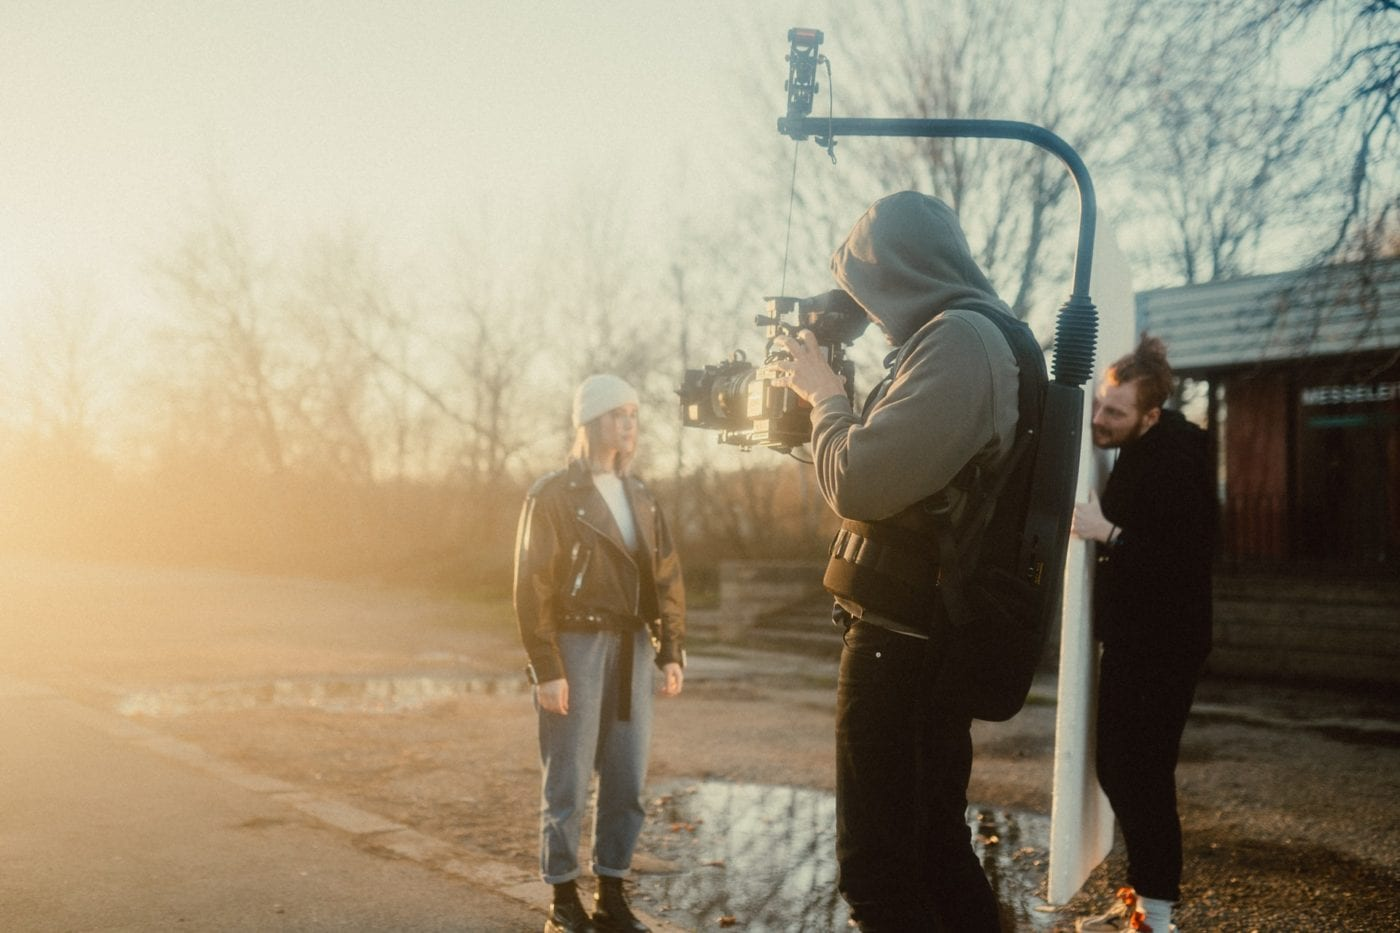 DP and crew working to get just the right light.